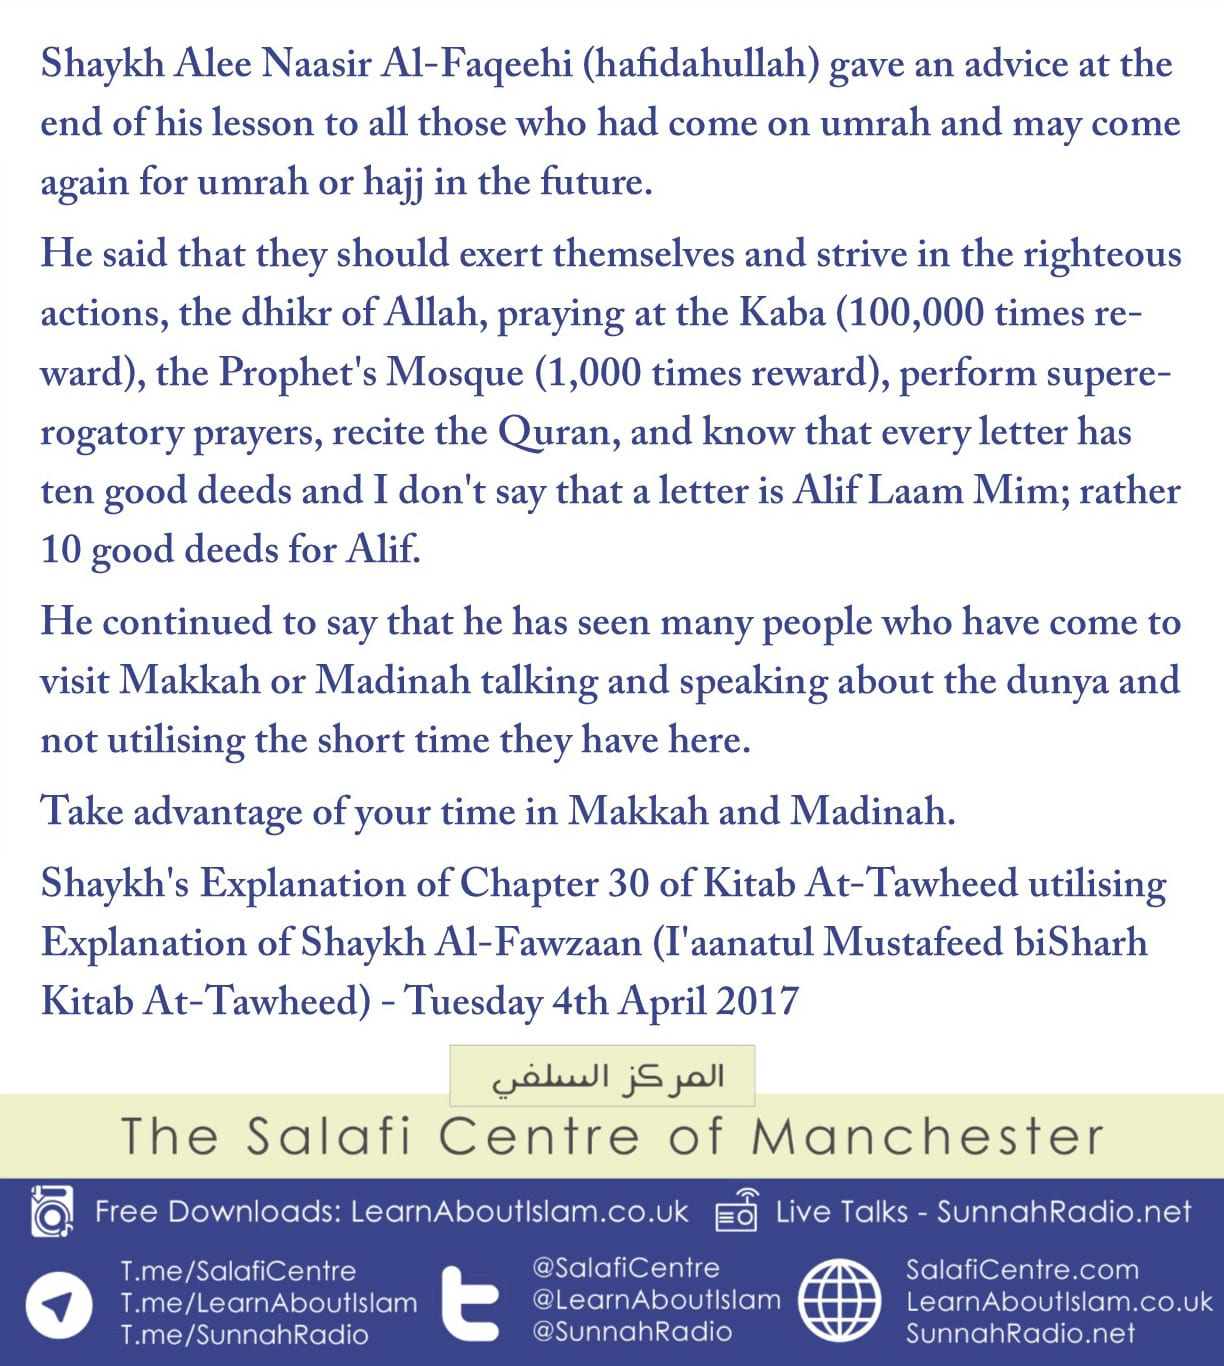 Advice For Those Who Come on Umrah – Shaykh Alee Naasir Al-Faqeehi (hafidahullah)